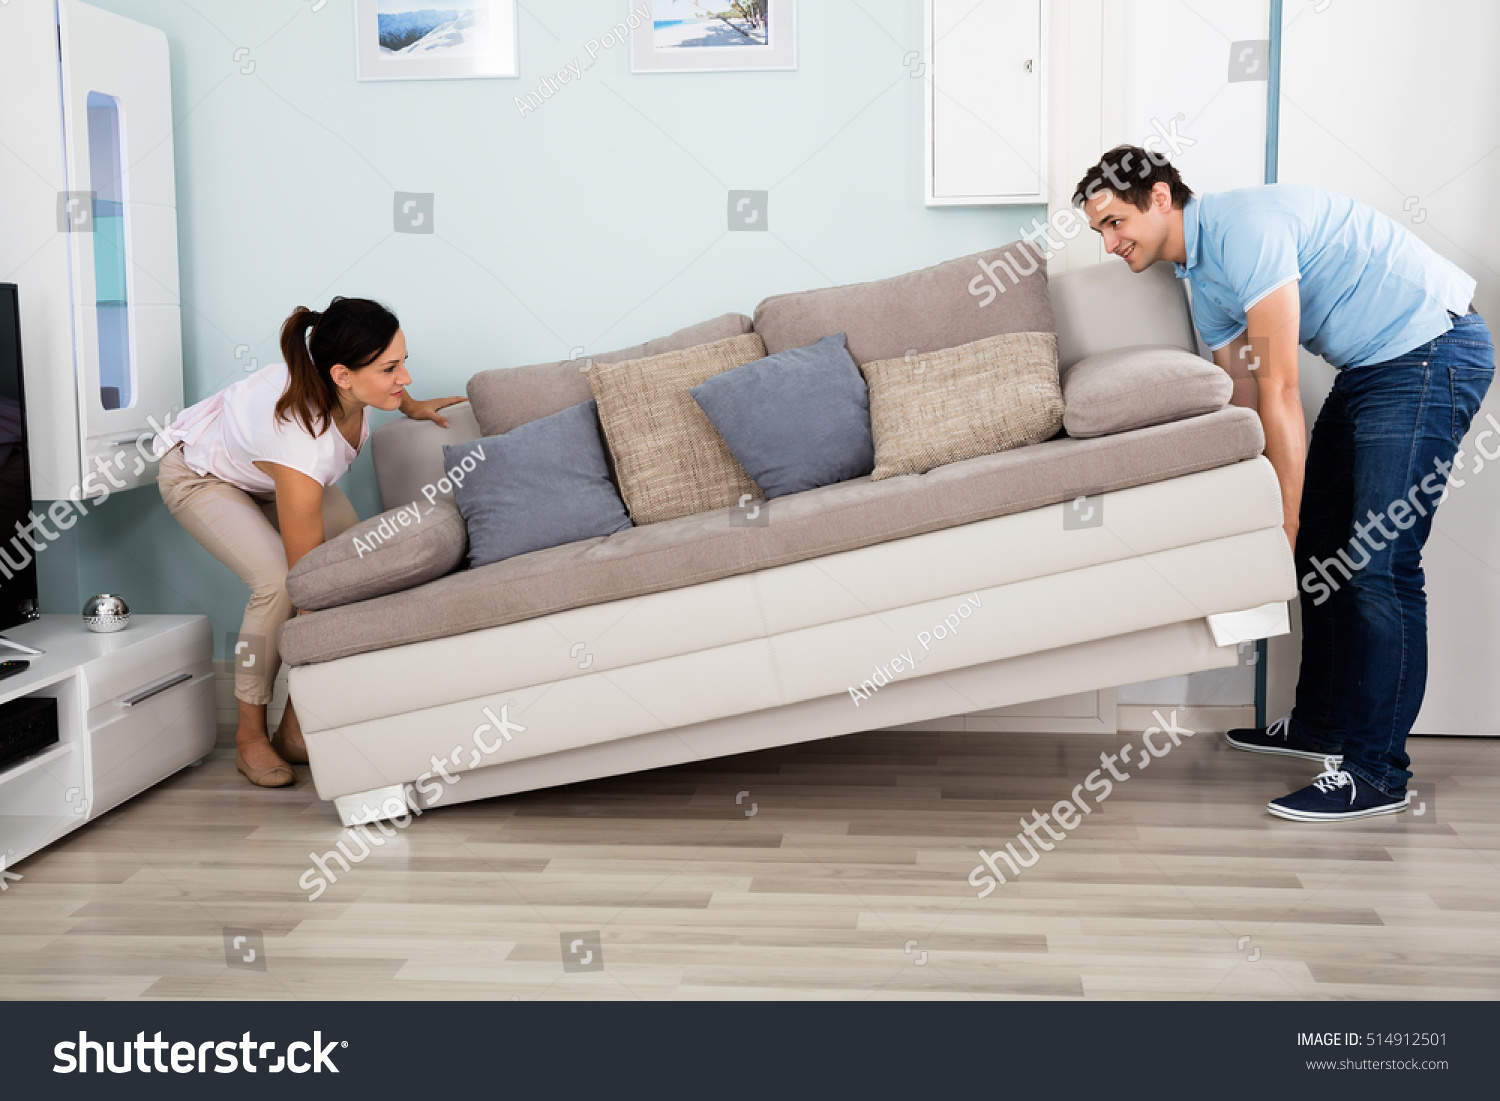 Young happy couple placing sofa together stock photo for Living room ideas for young couples